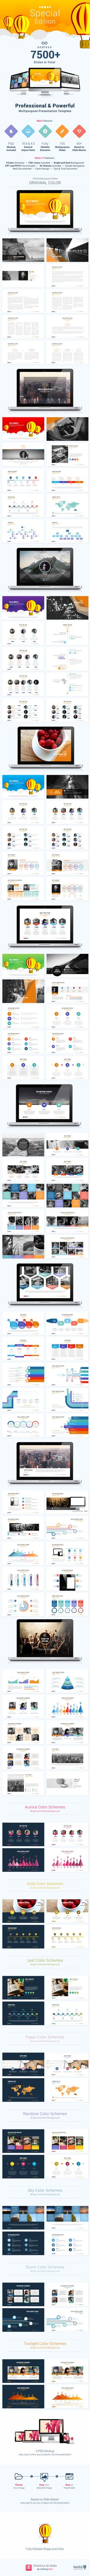 Powerful Business Presentation Template #powerpoint #powerpointtemplate Download: http://graphicriver.net/item/powerful-business-presentation/10379919?ref=ksioks